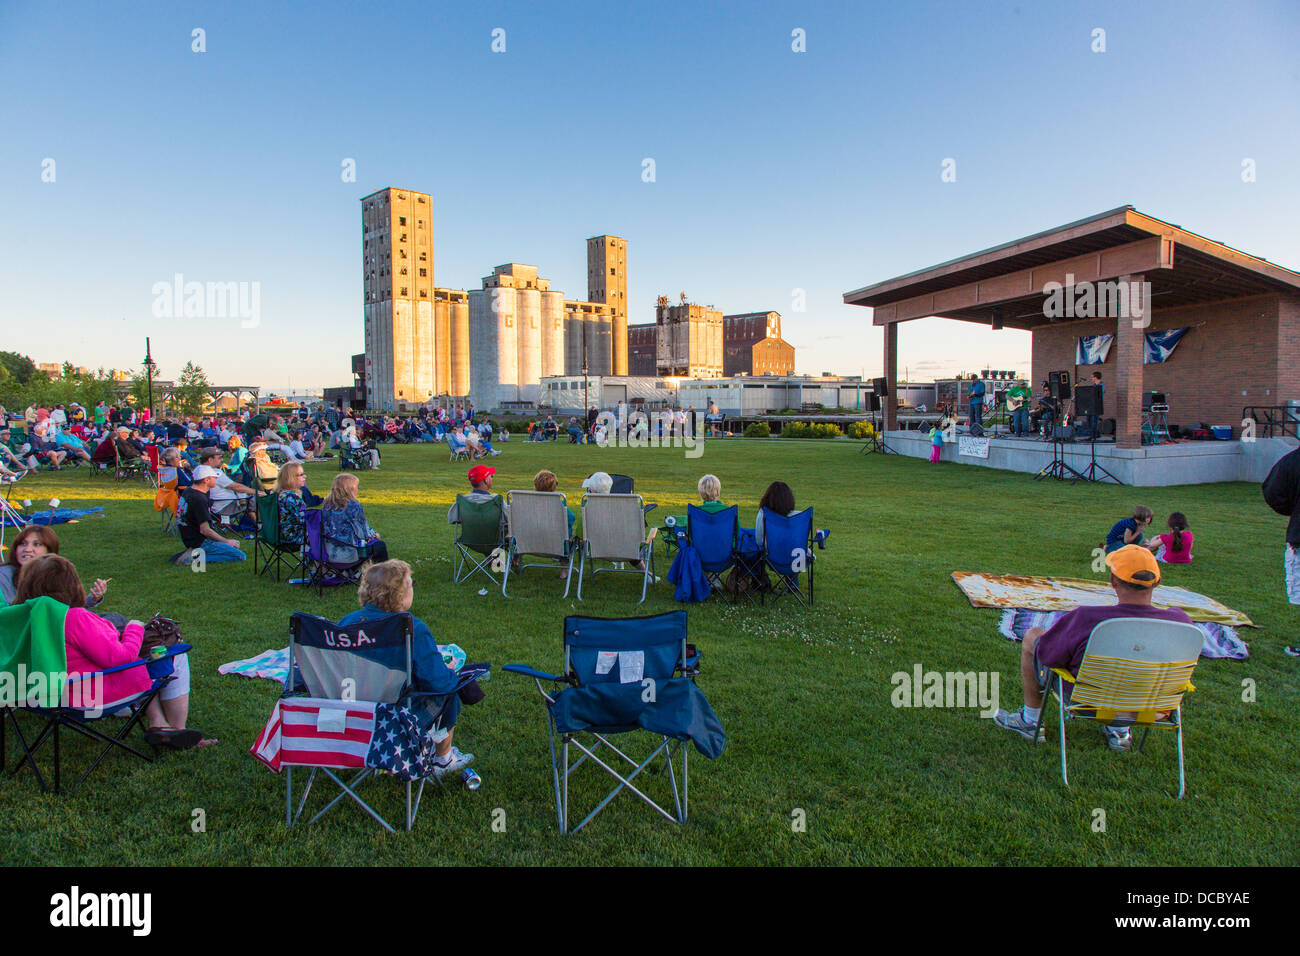 Outdoor music concert at River Fest Park in Buffalo New York United States Stock Photo